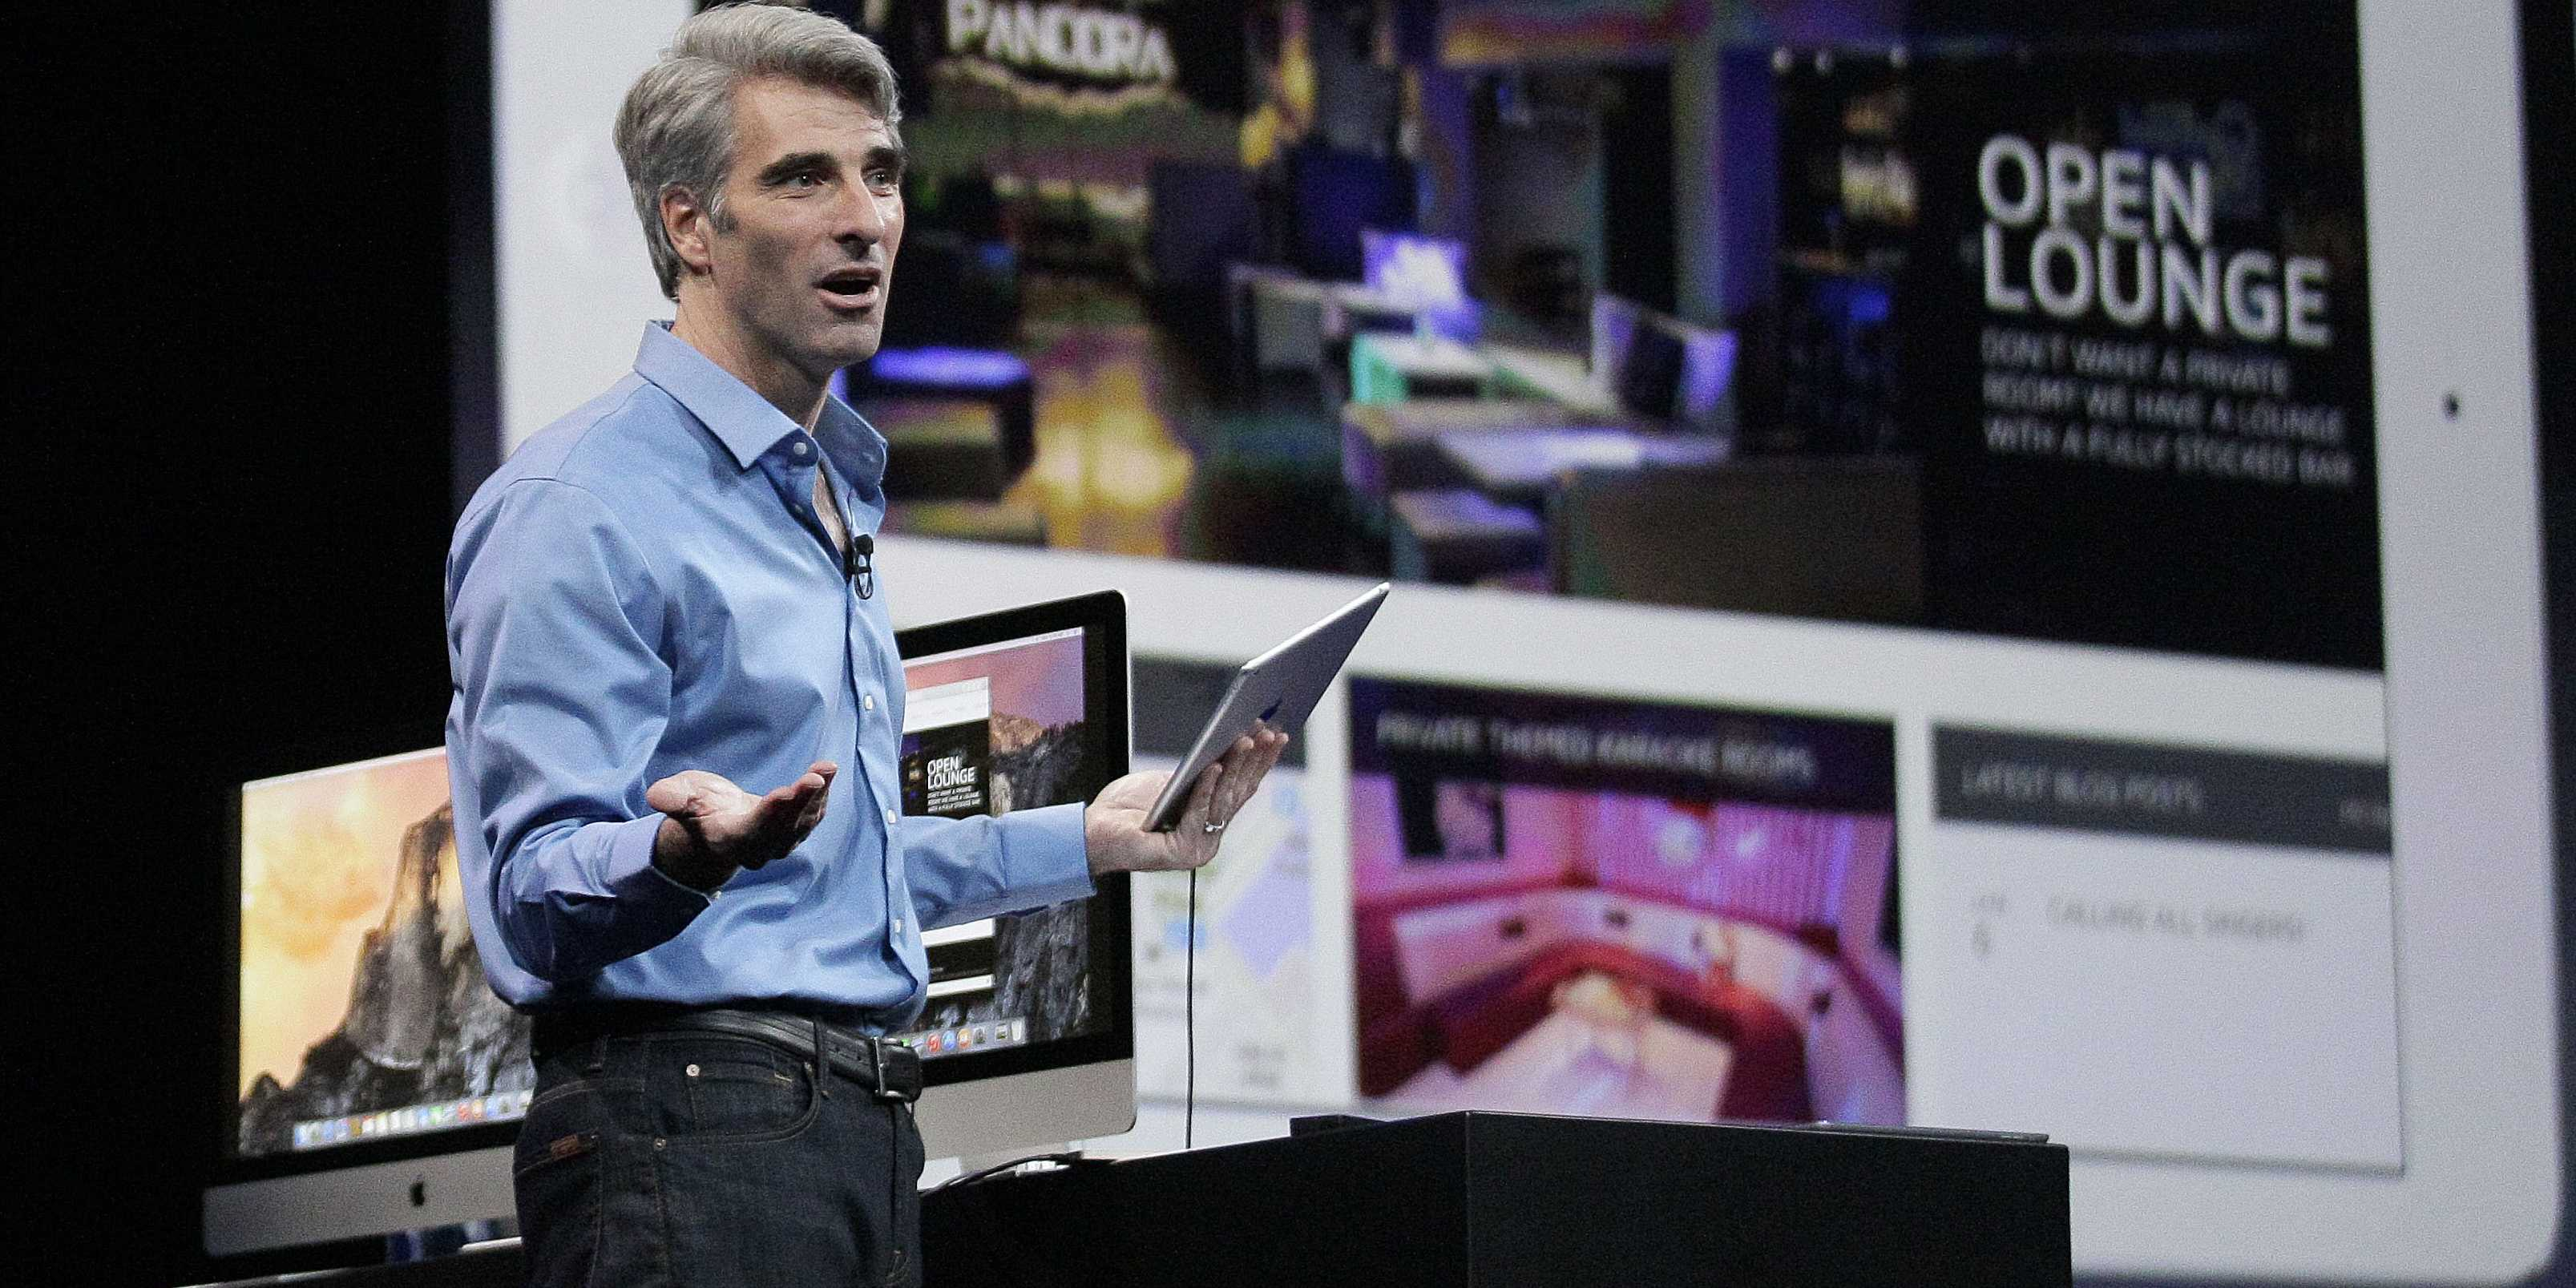 meet-craig-federighi-the-apple-executive-who-dominated-apples-big-presentation-today